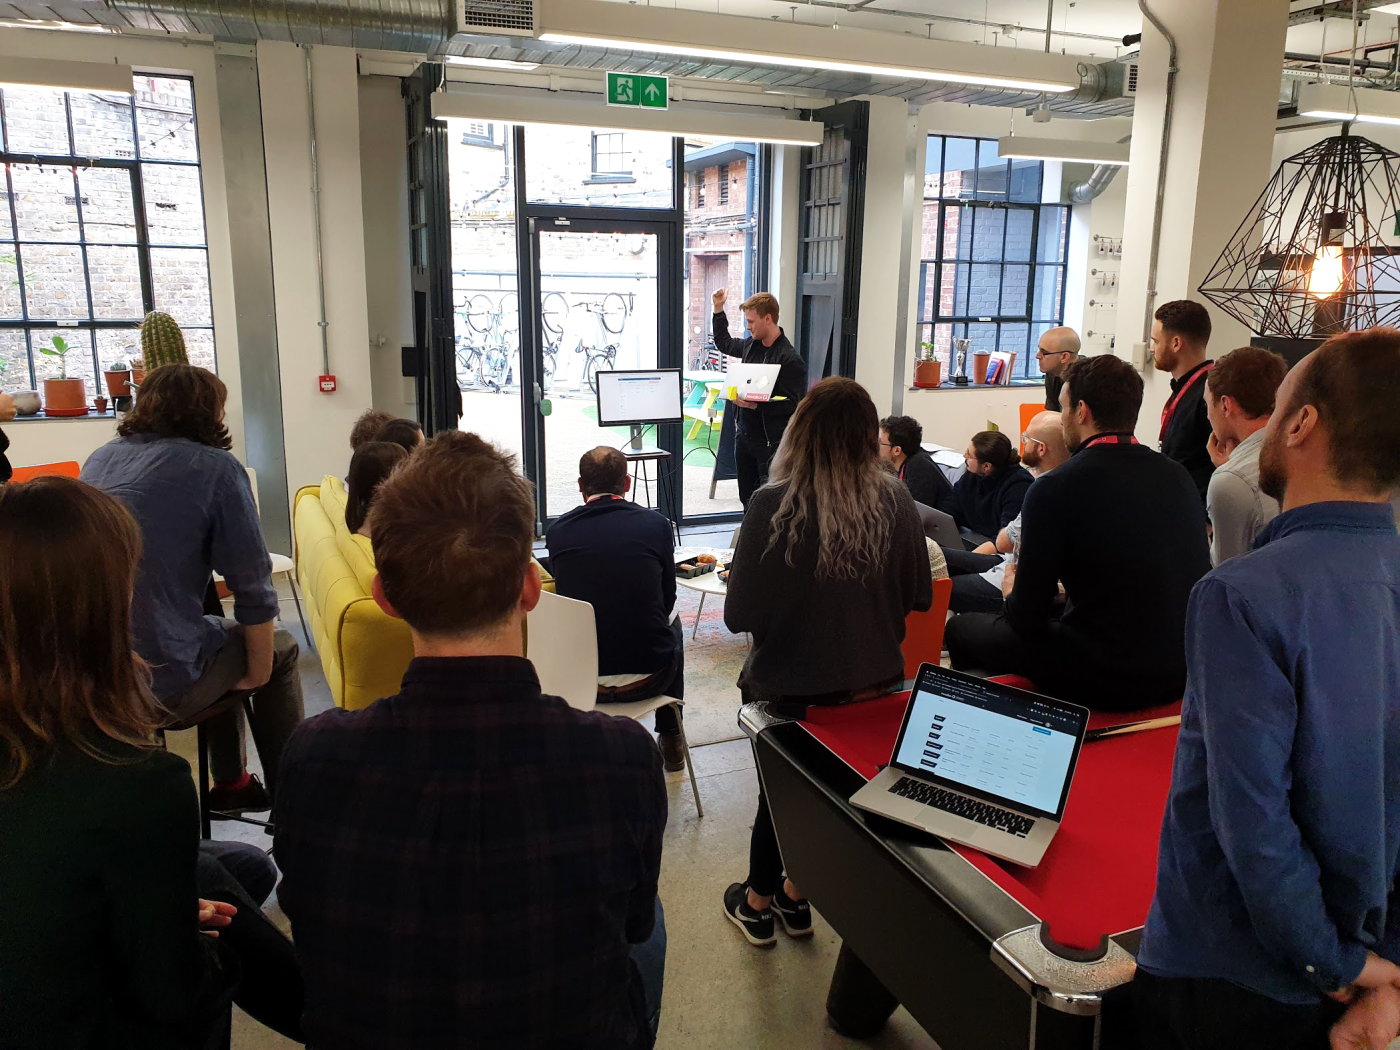 A group of people watching a man give a presentation